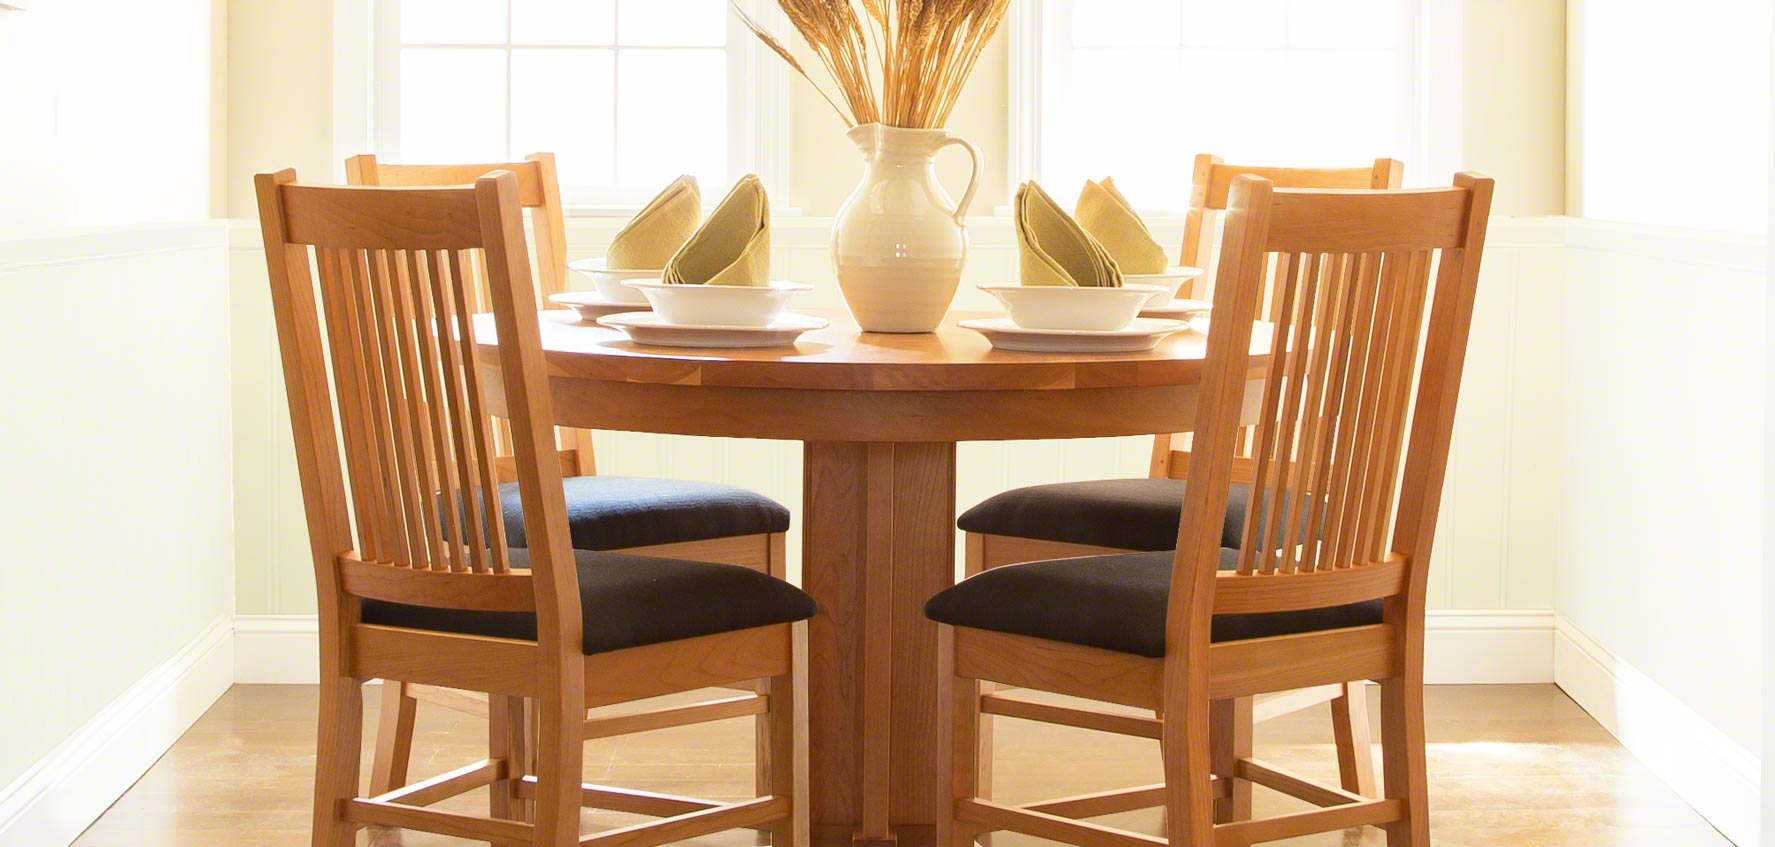 Mission & Craftsman Style Furniture - Vermont Woods Studios on Furniture Style  id=72616